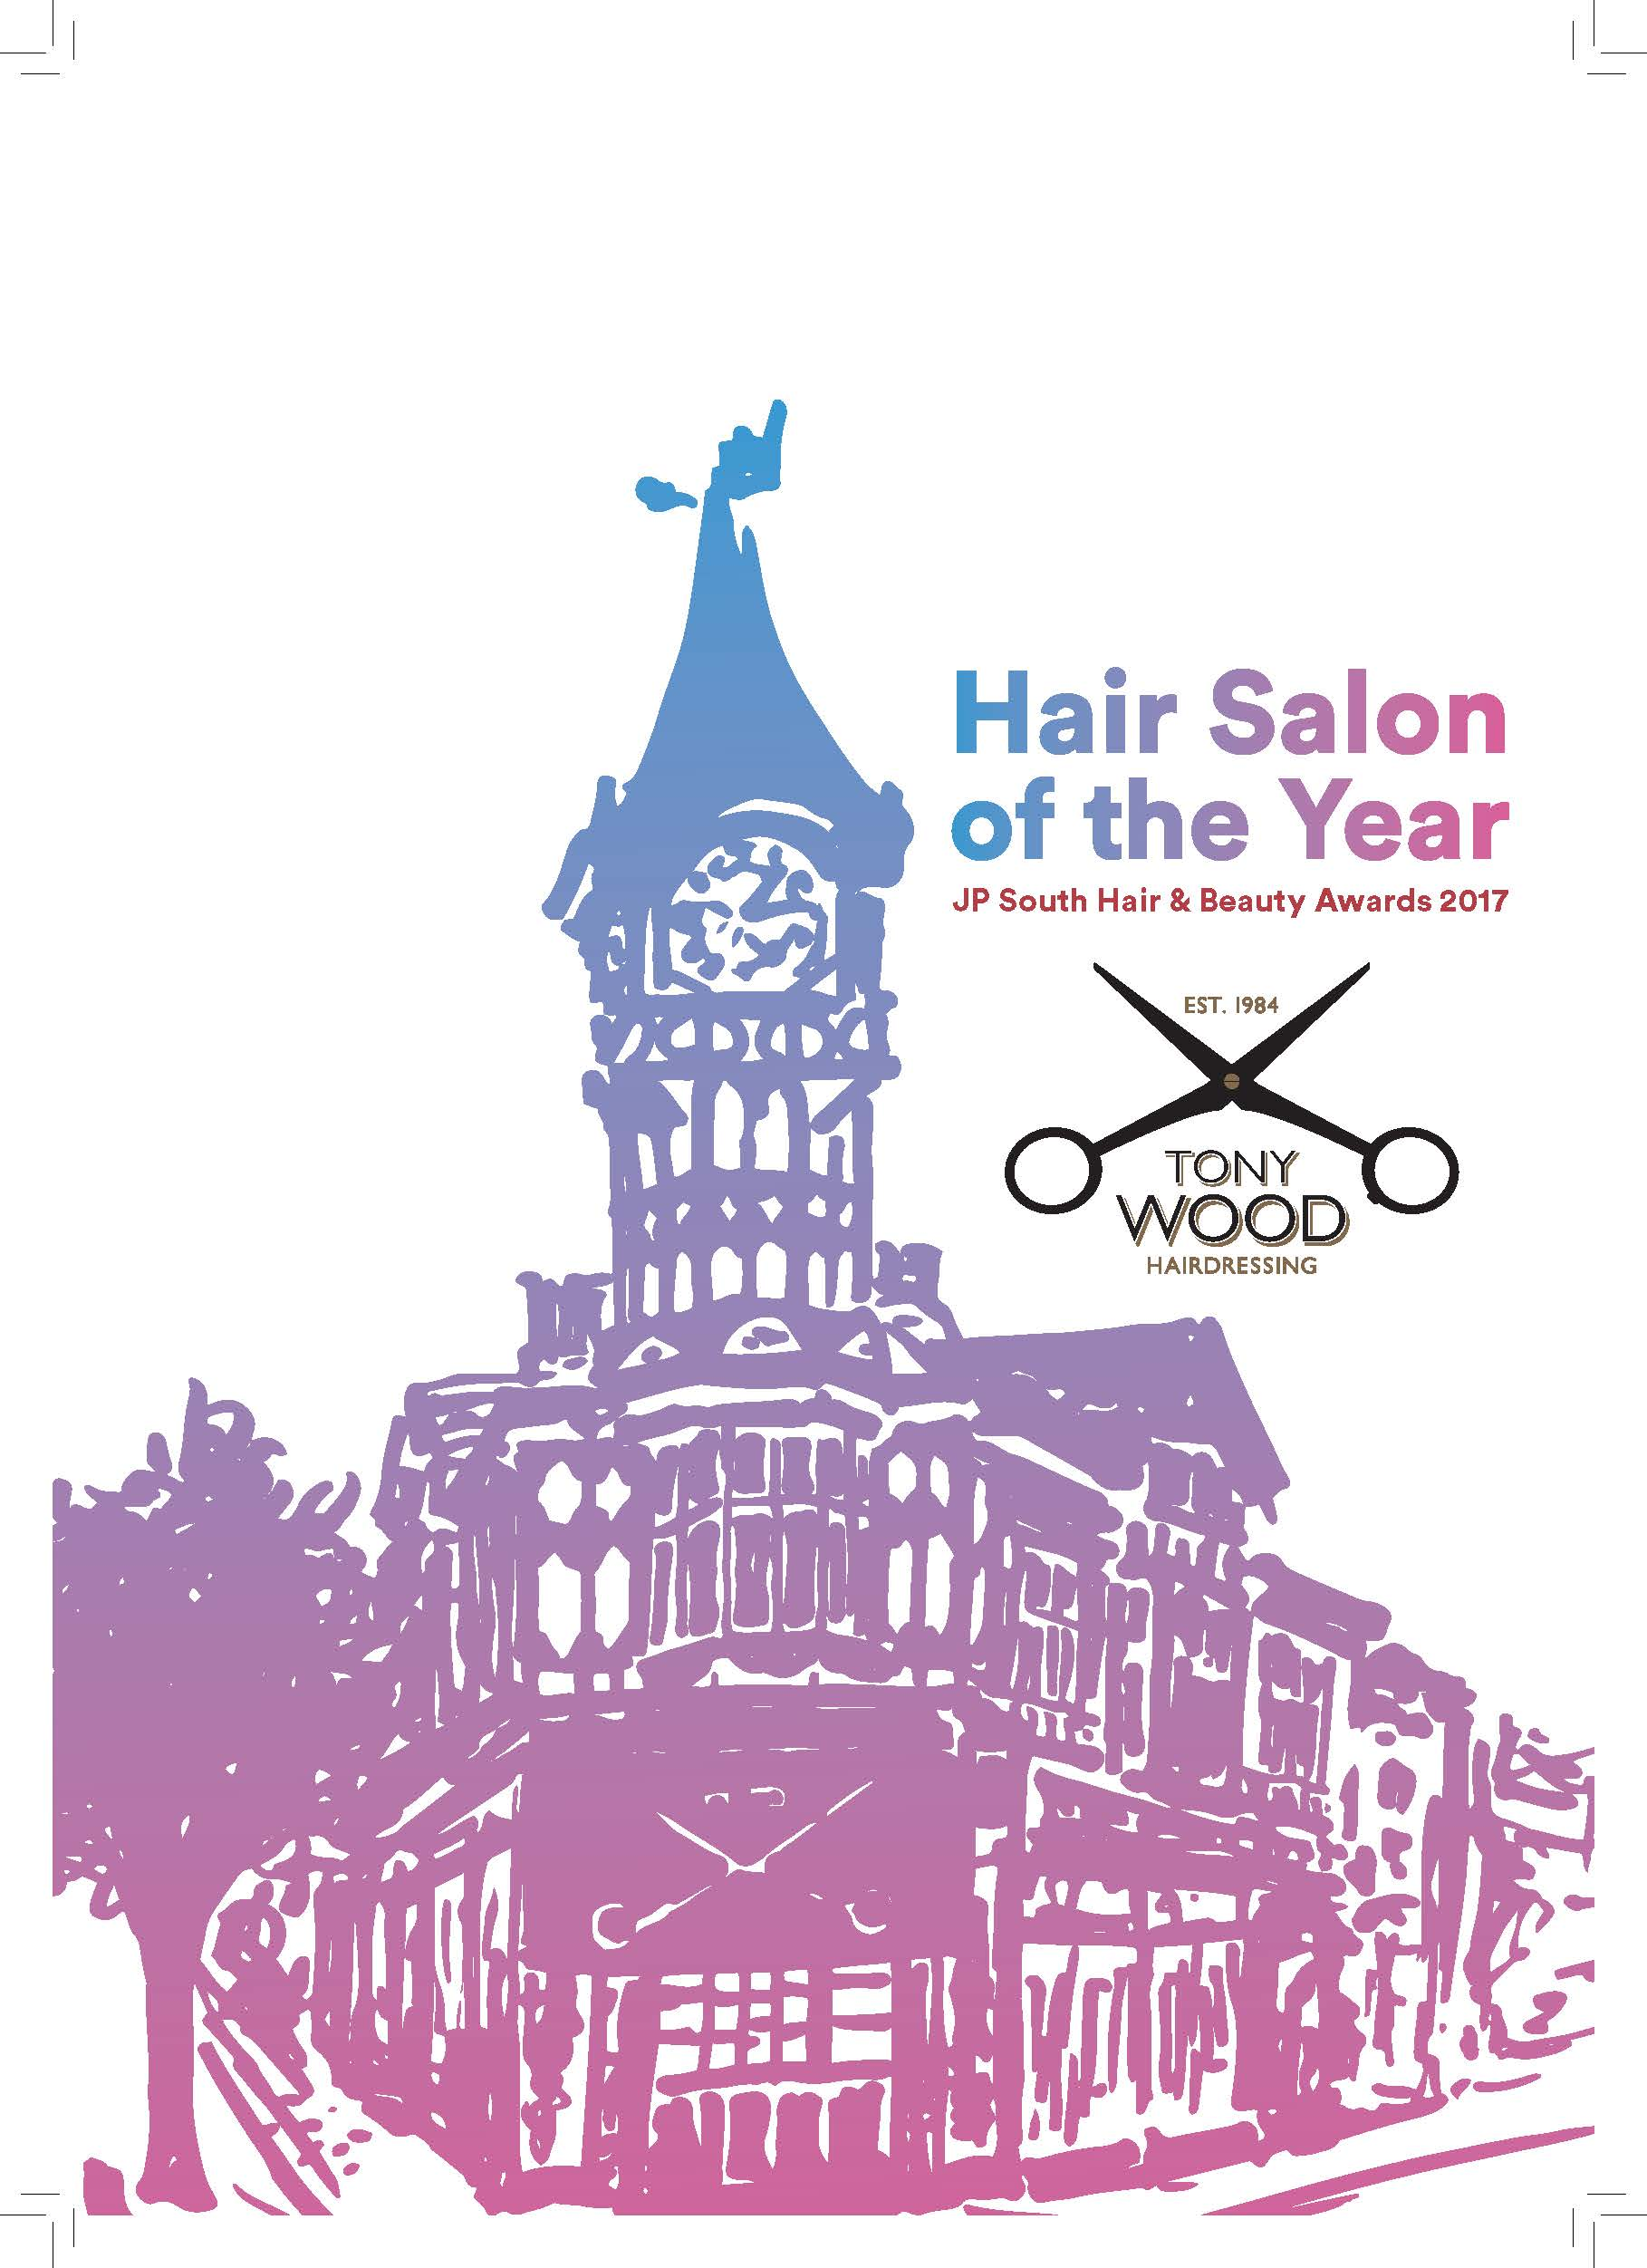 Hair Salon of the Year Final_Page_01.jpg